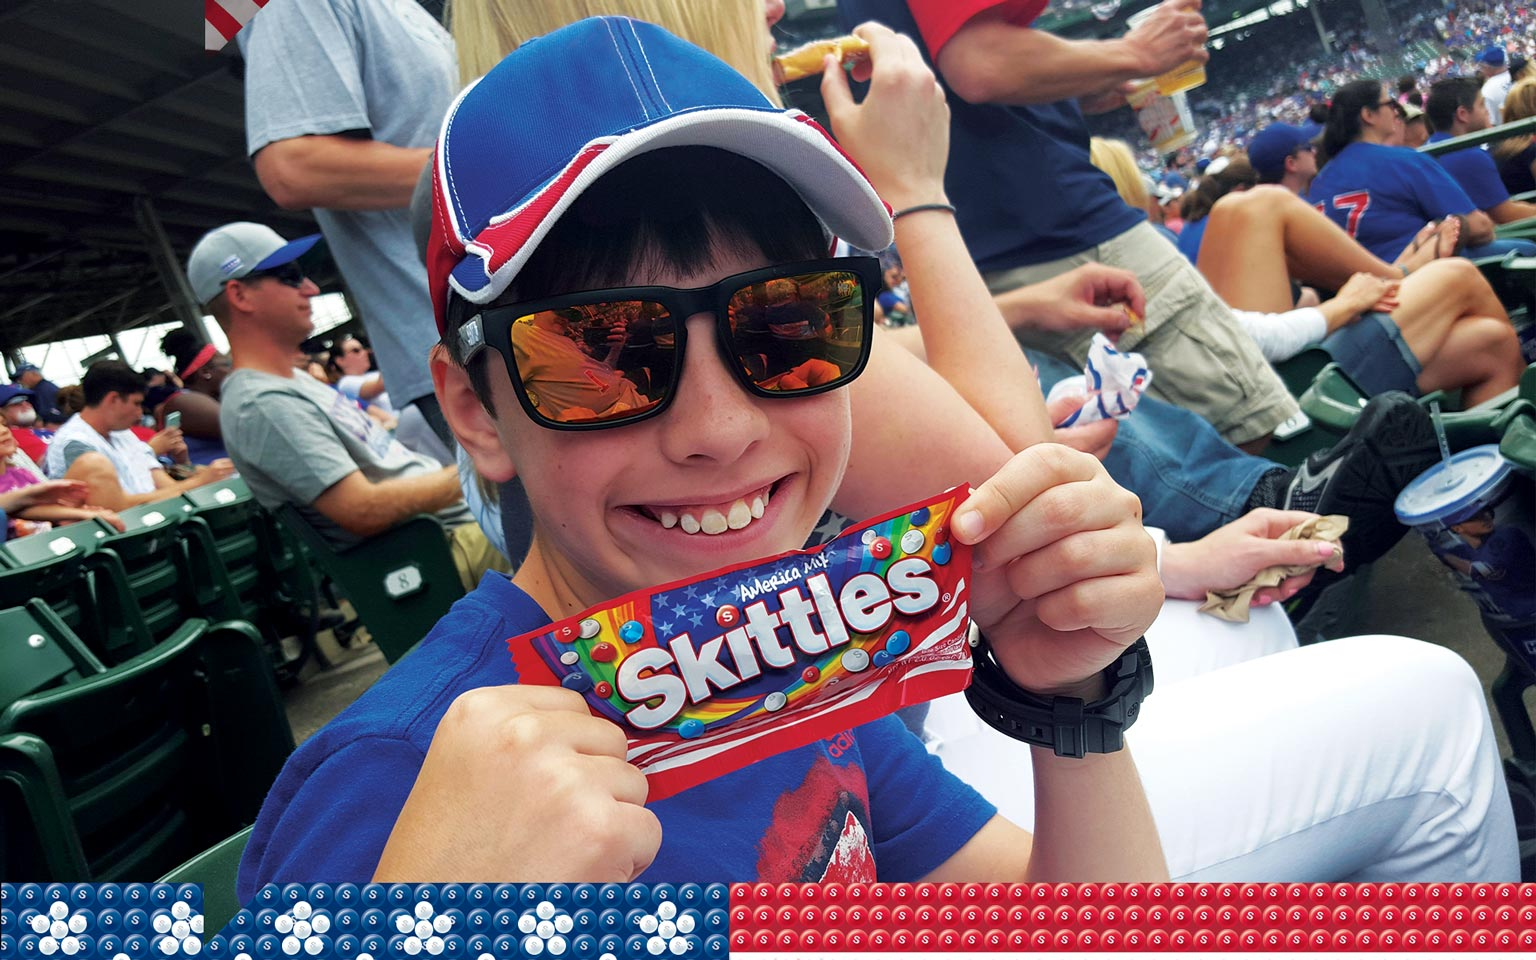 Skittles America Mix - In-Use